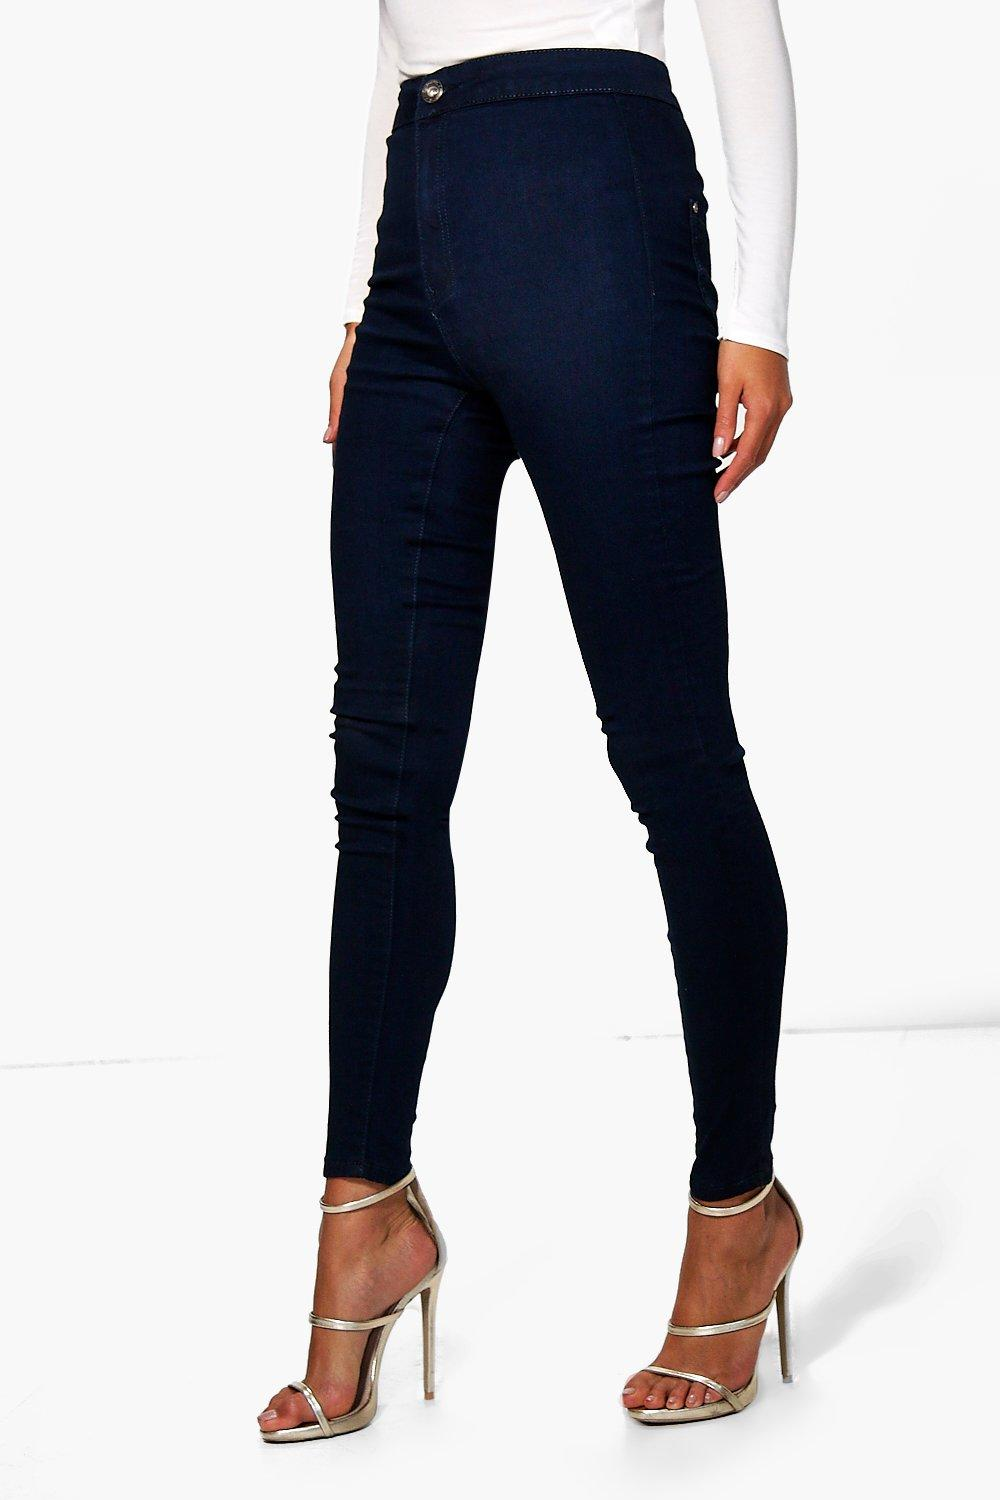 Navy High Rise Tube Jeans navy